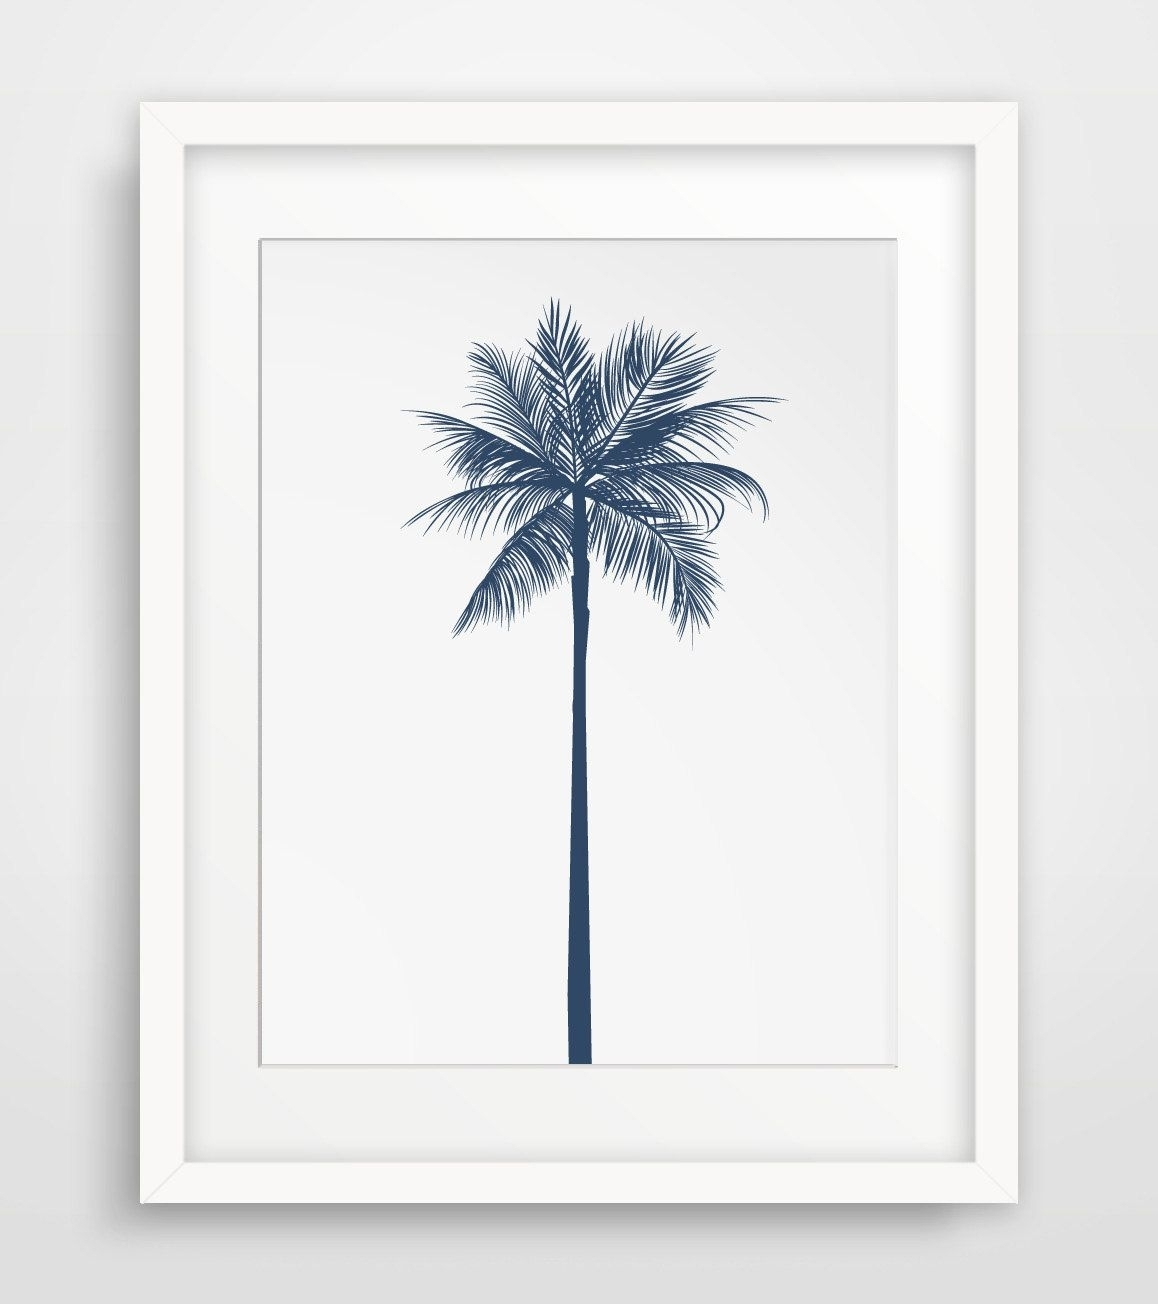 Palm Tree Decor, Navy Wall Decor, Navy Wall Print, Palm Tree Artwork In Most Up To Date Palm Tree Wall Art (Gallery 19 of 20)